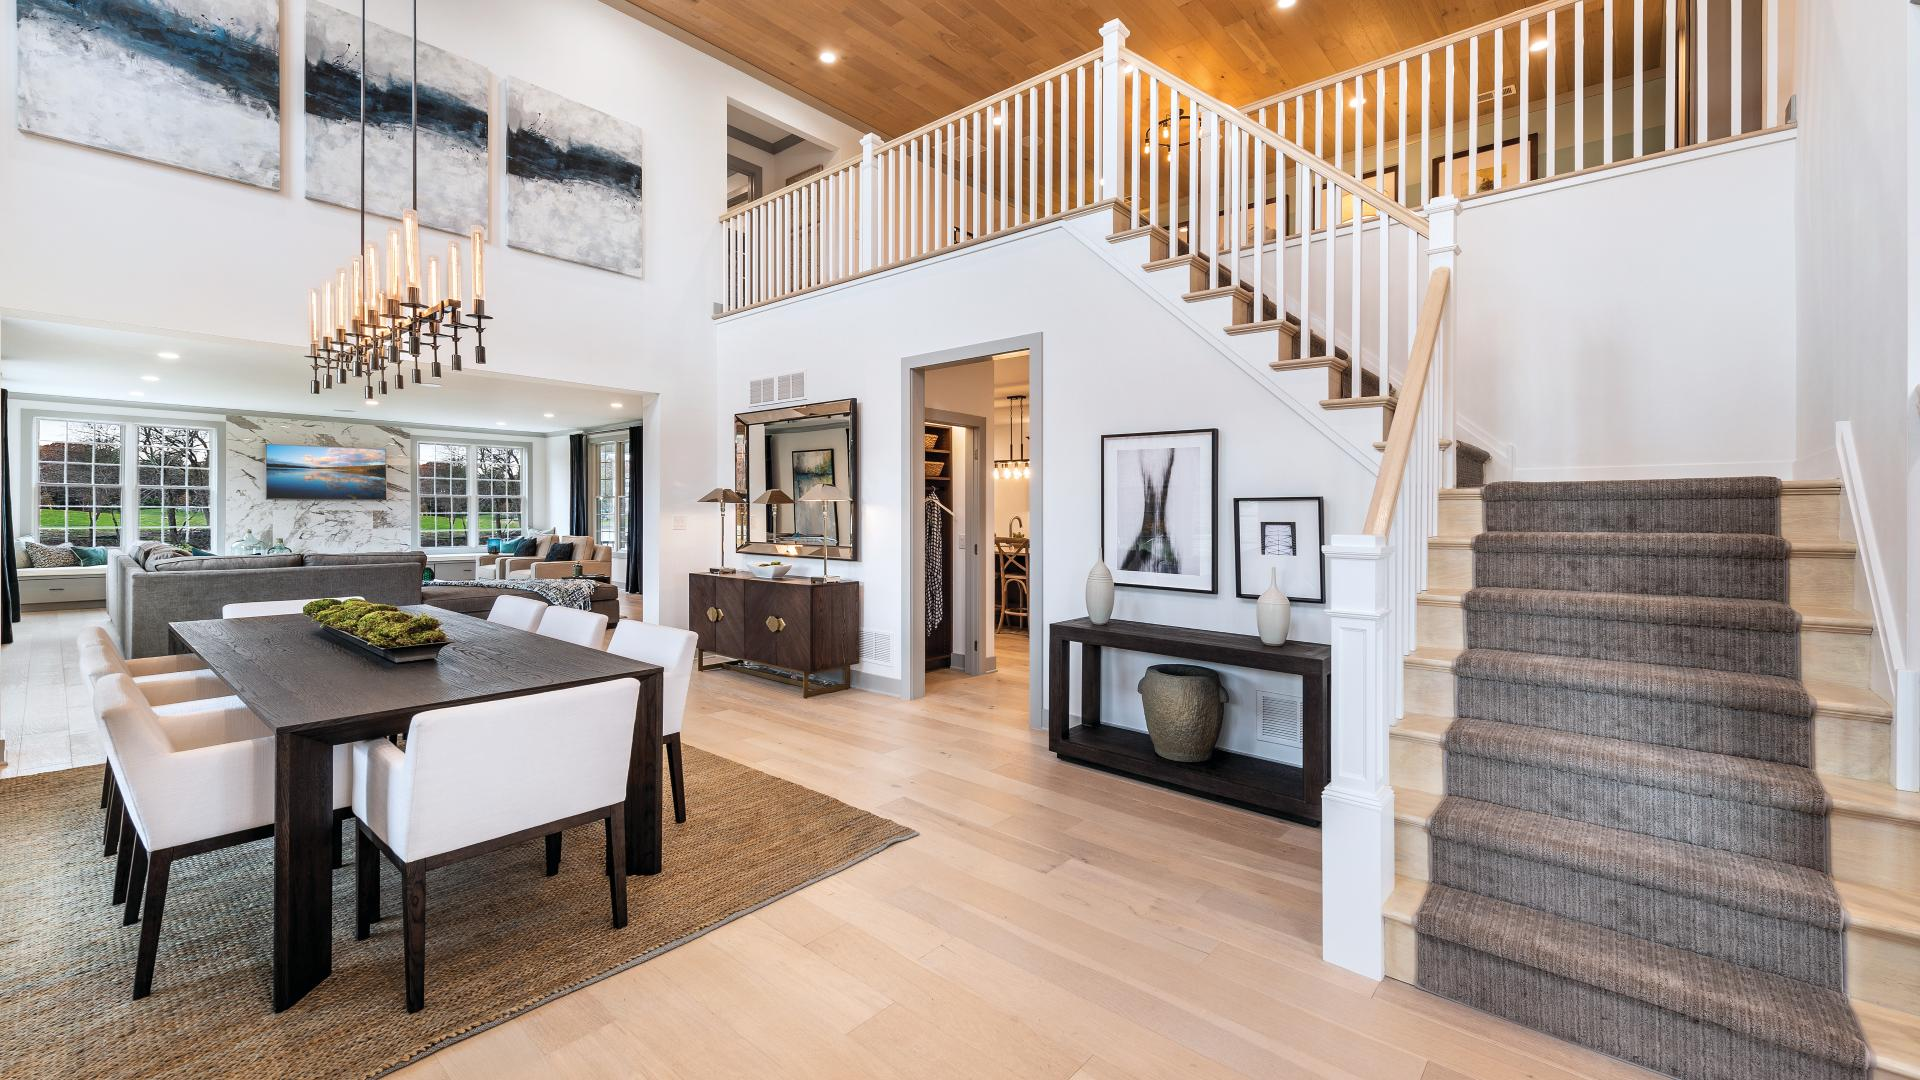 Entrance foyer with open floor plan to dining area and great room